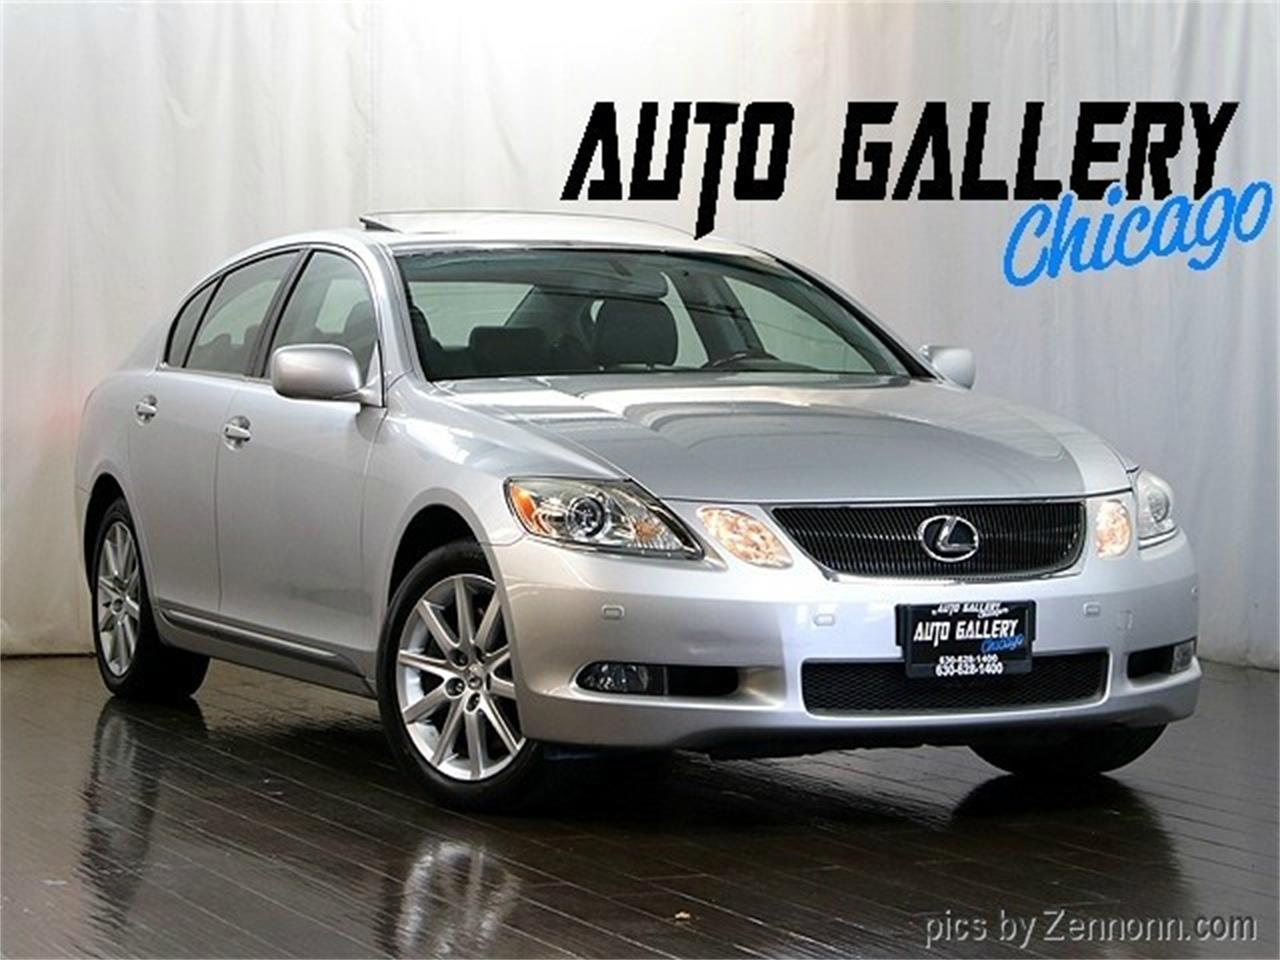 Large Picture of 2007 GS300 located in Illinois - $11,990.00 Offered by Auto Gallery Chicago - M6DE